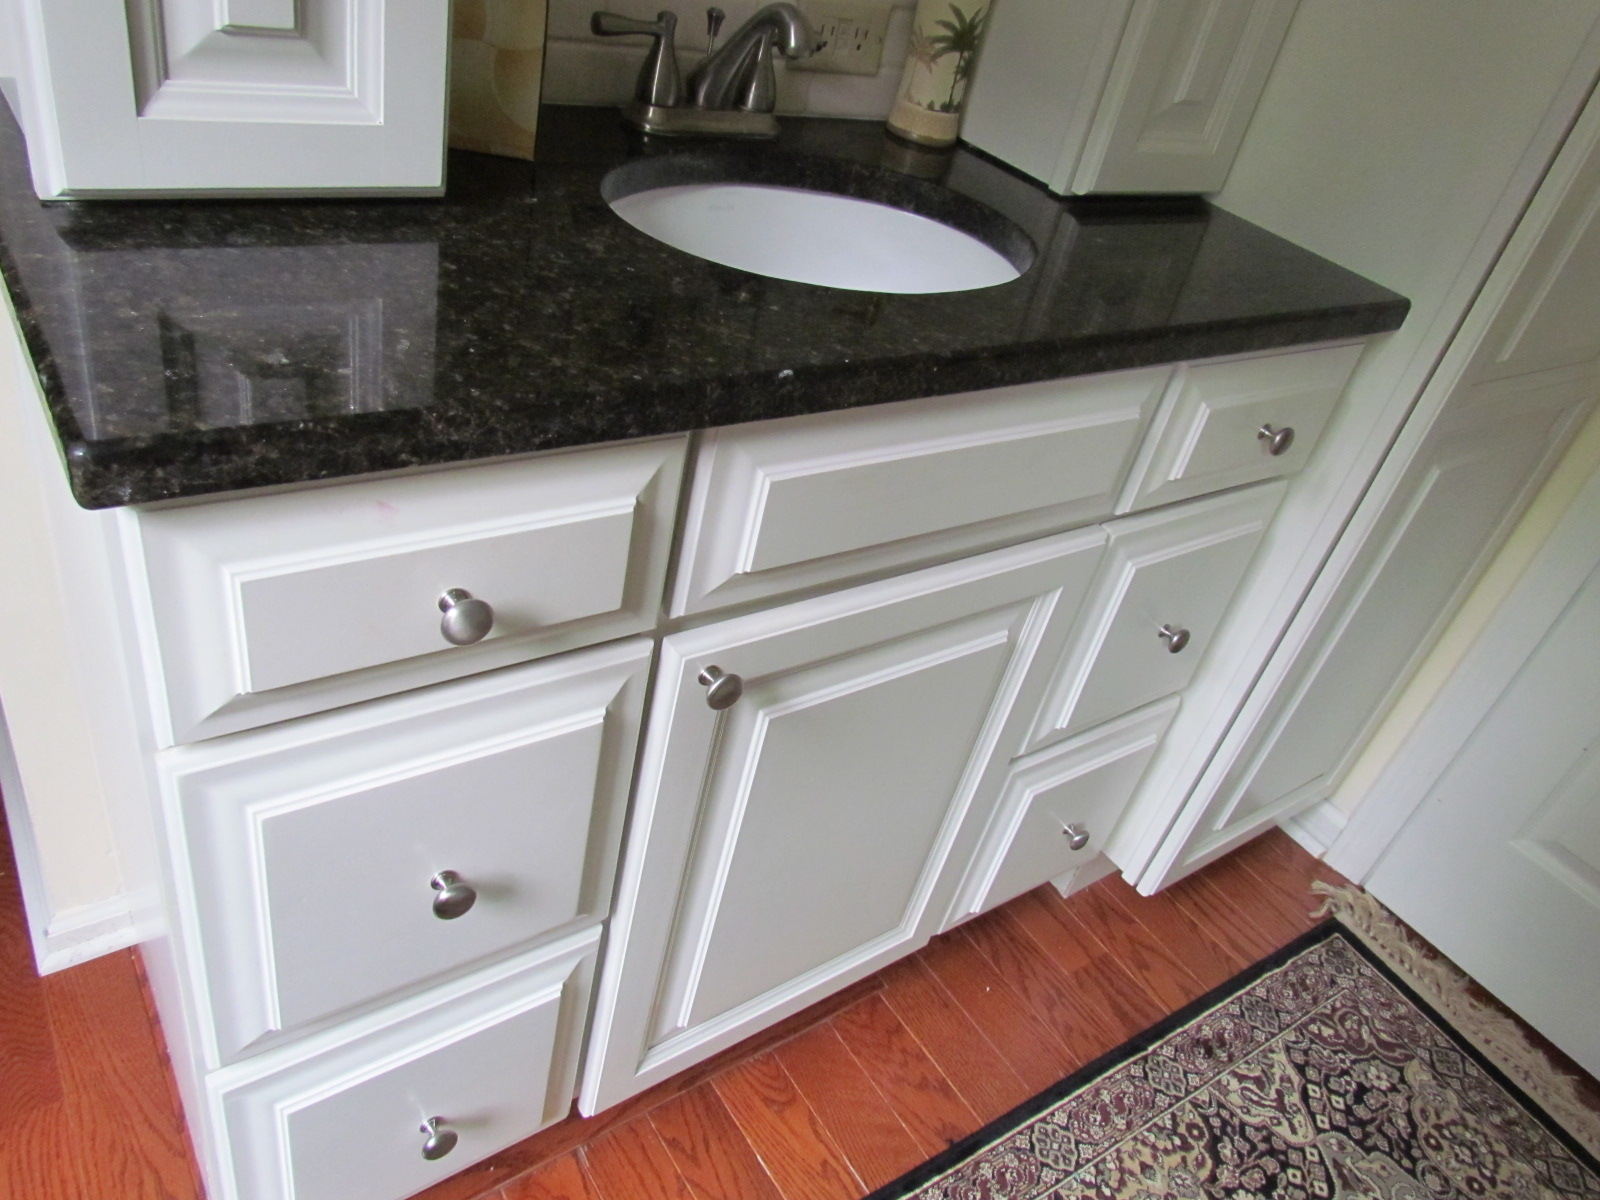 Building A Better Bathroom FasterWhile Saving On Costs All Around - Time to renovate bathroom